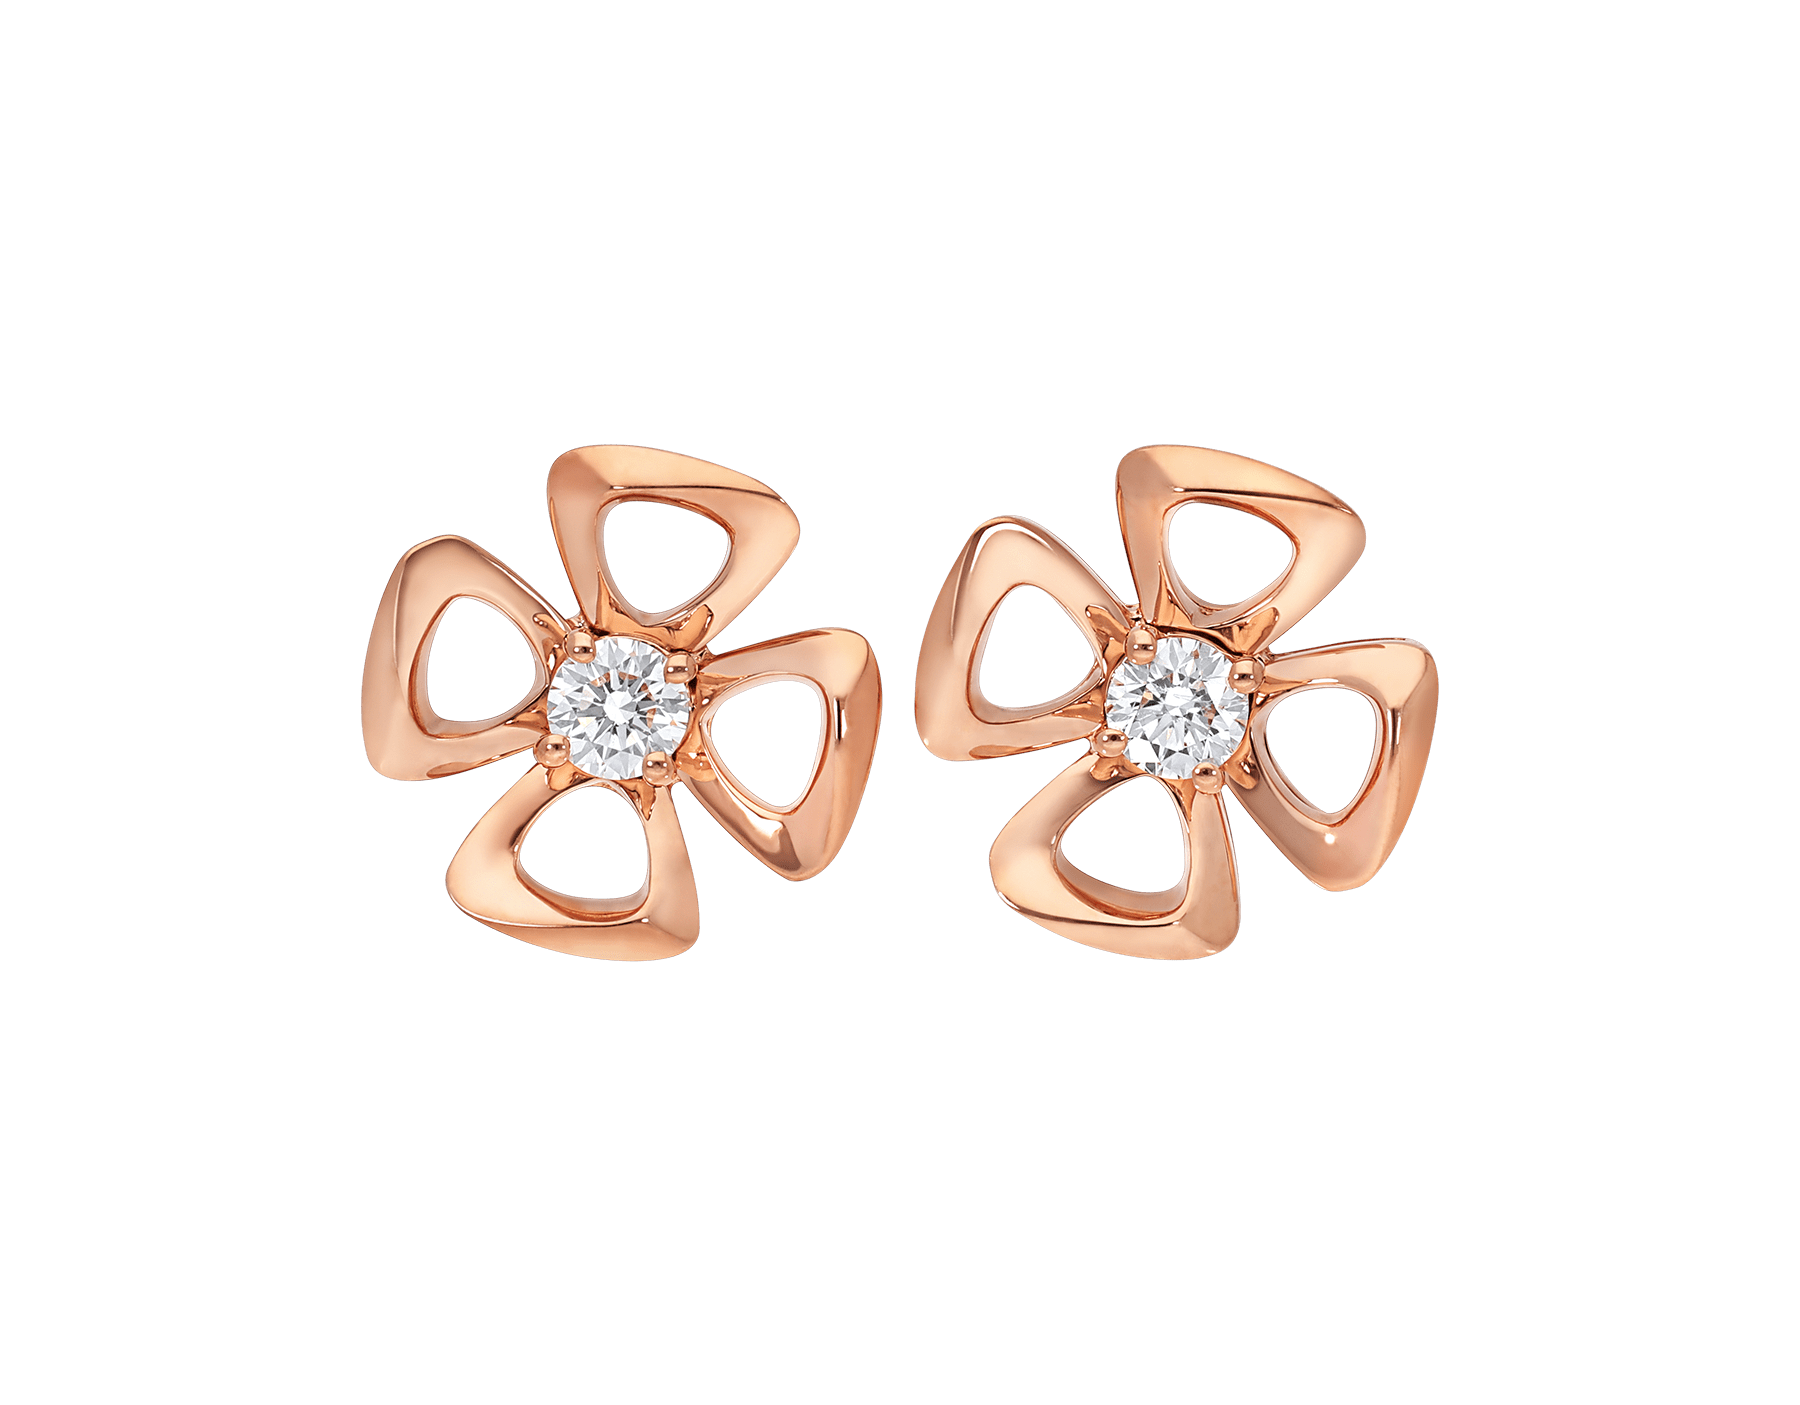 Boucles d'oreilles Fiorever en or rose 18 K serties de deux diamants de centre 355327 image 1